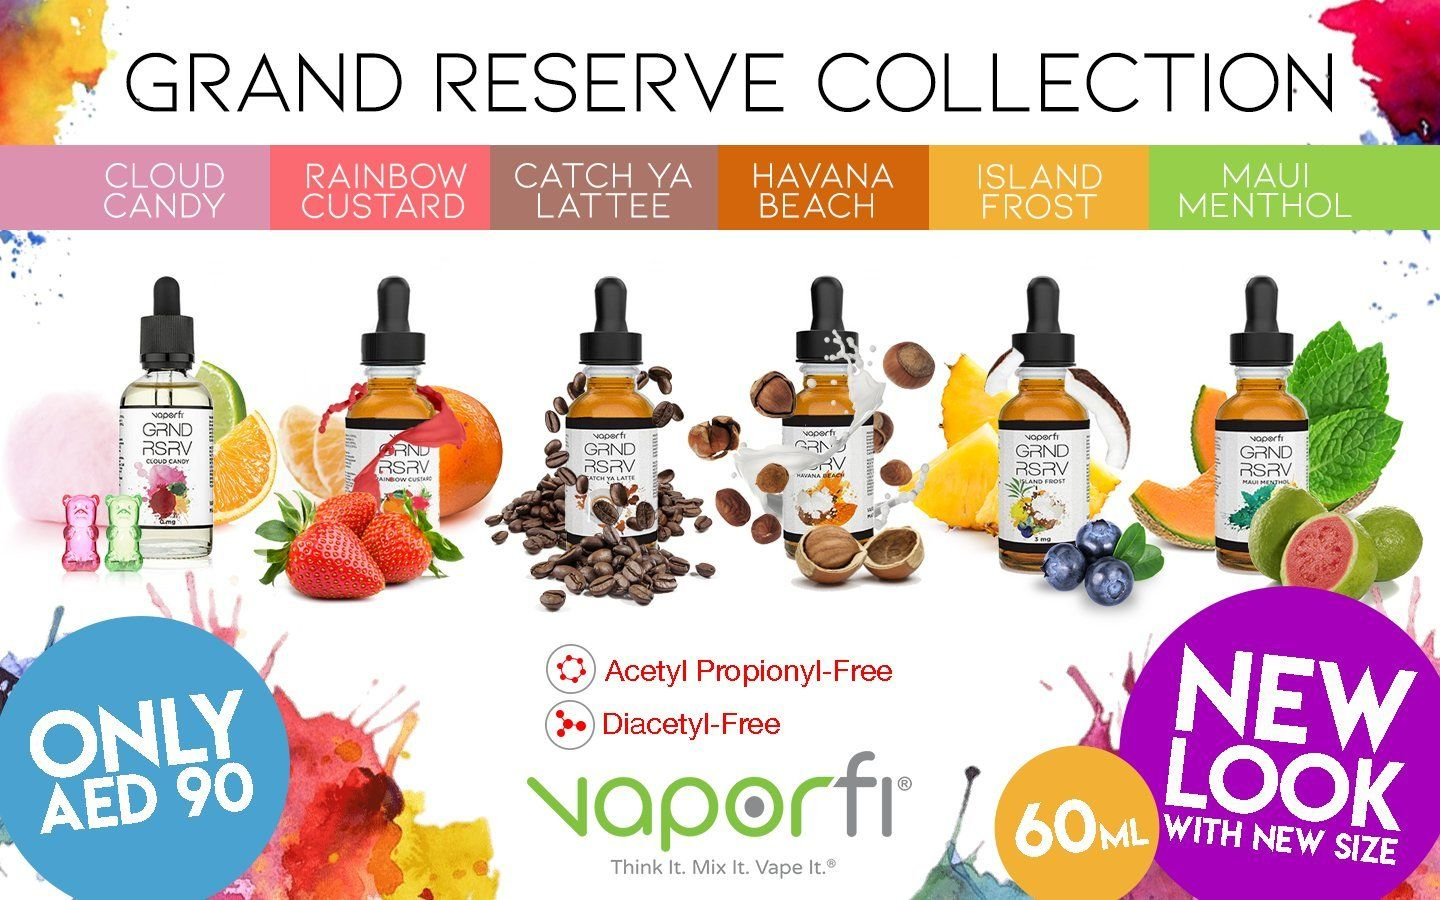 Did you know? VAPORFI is one of the popular e-liquid brands